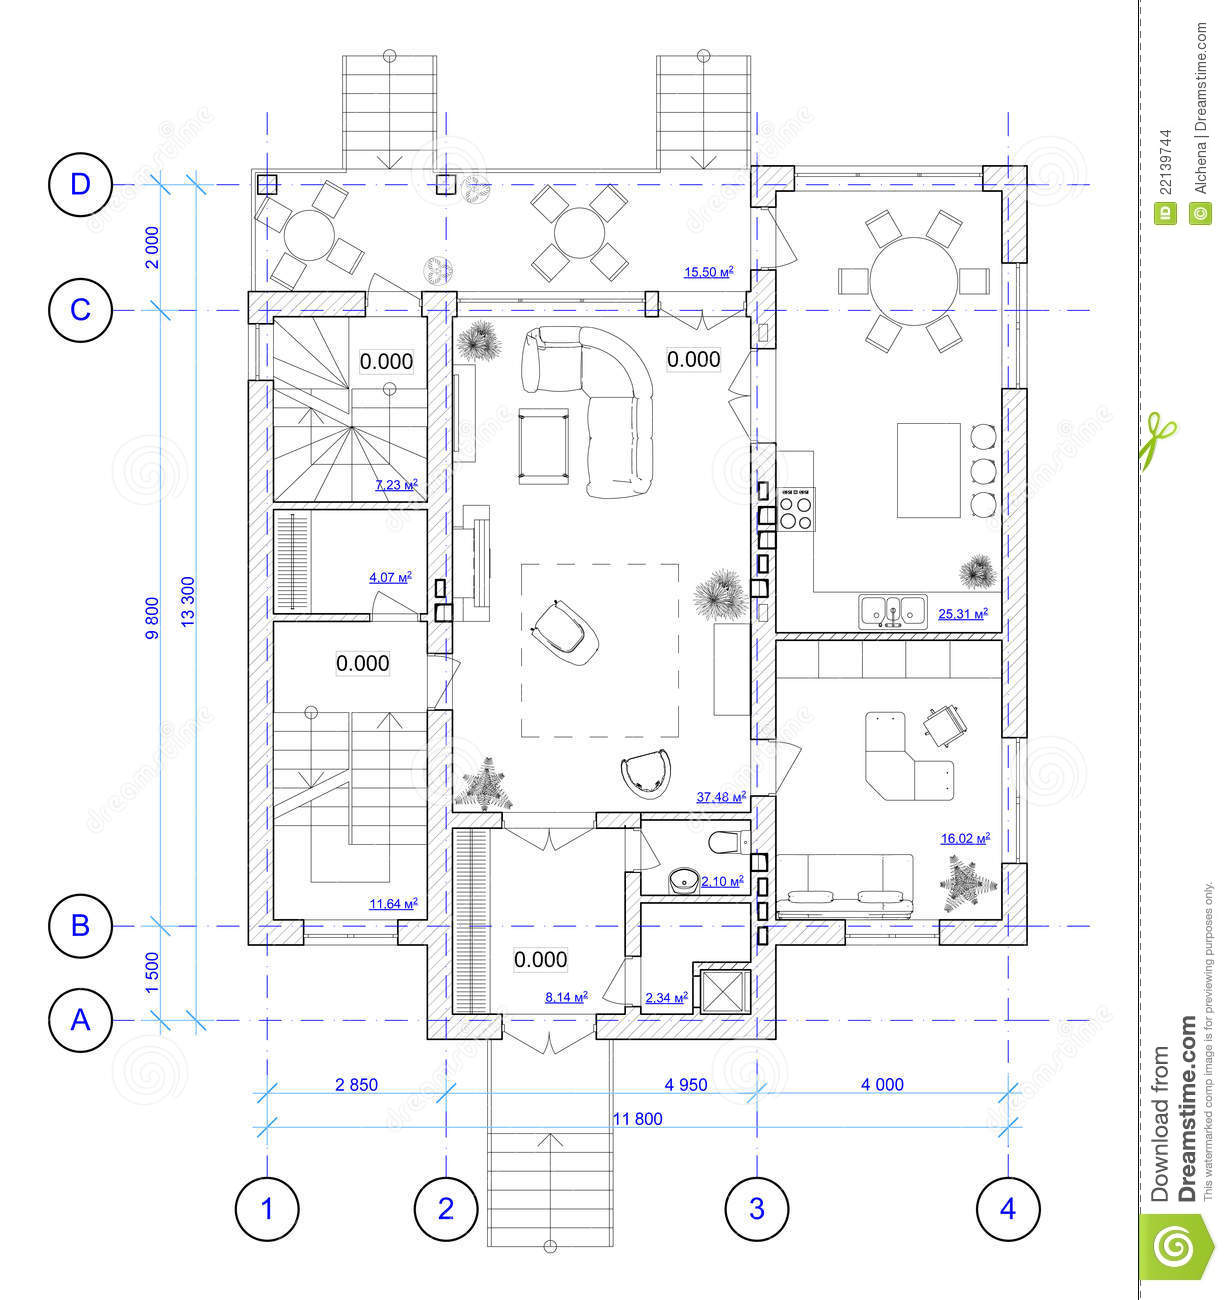 Plan architectural de 1 tage de maison images stock - Plan architecturale de maison ...